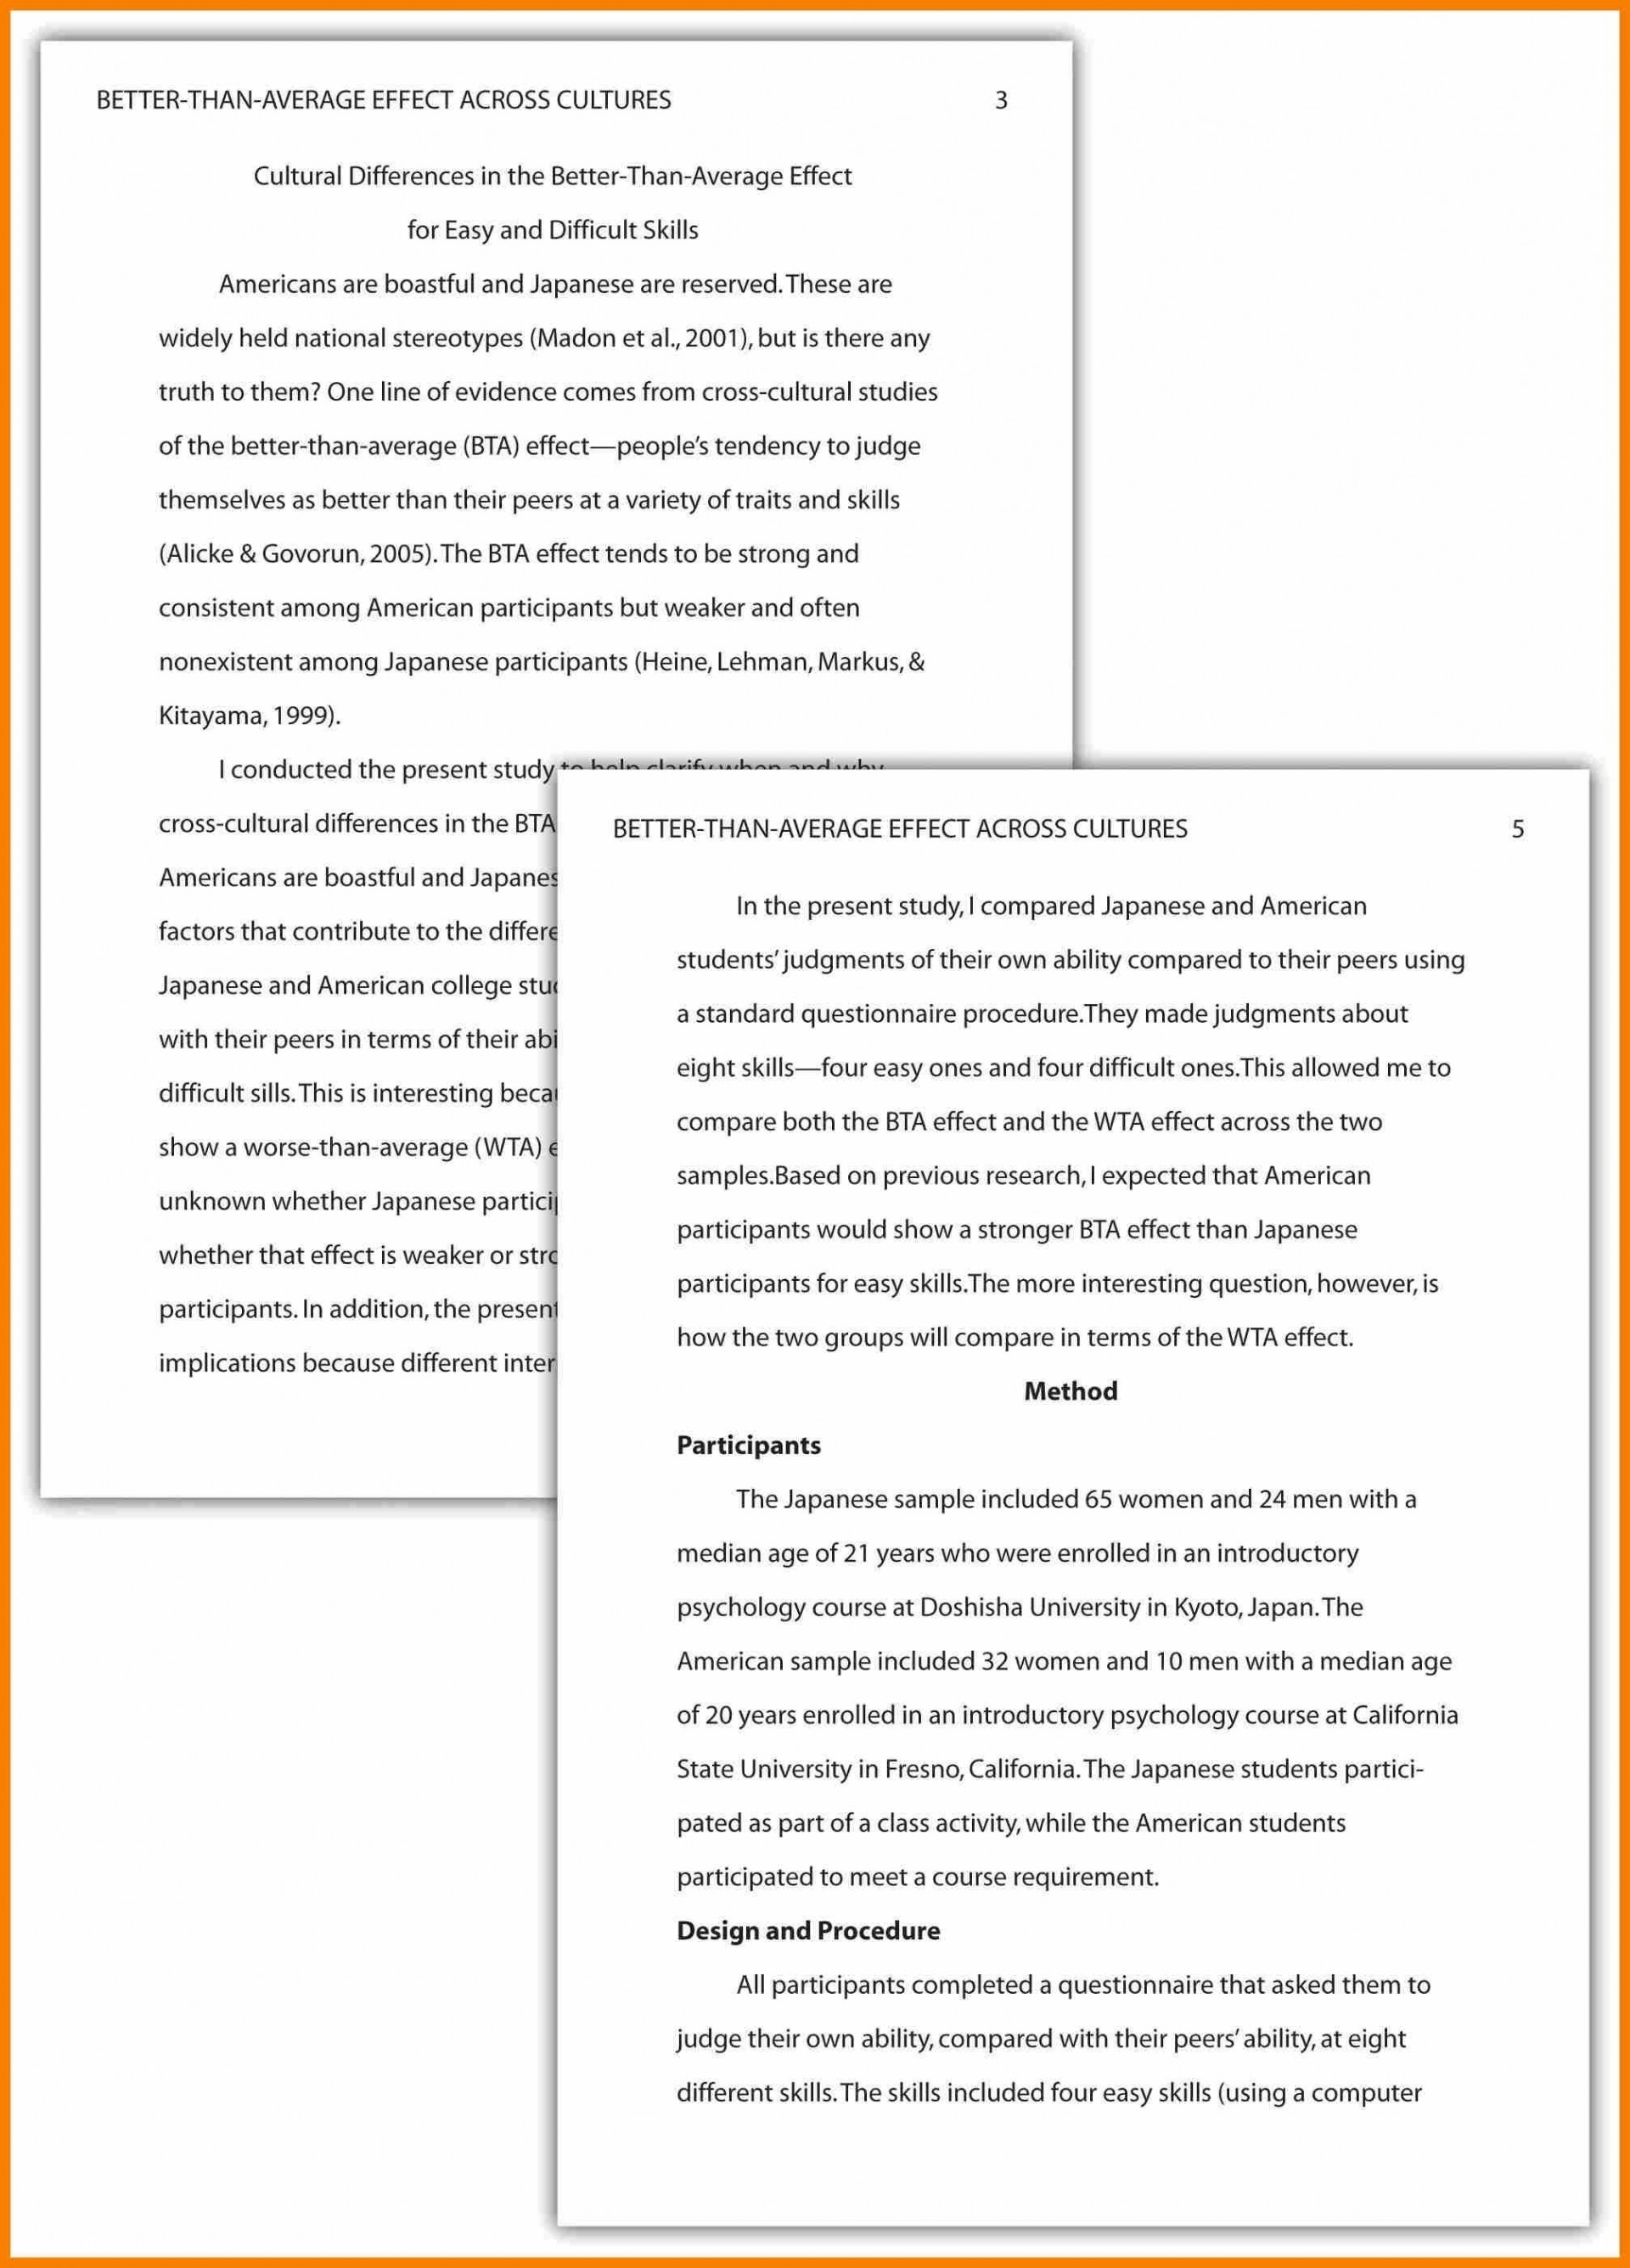 026 Essay Format Example Research Paper Apa Of Reflective In Style Ideas Collection Apamethods How To Write Unique Examples What Frightening For Middle School 2017 Writing College 1920